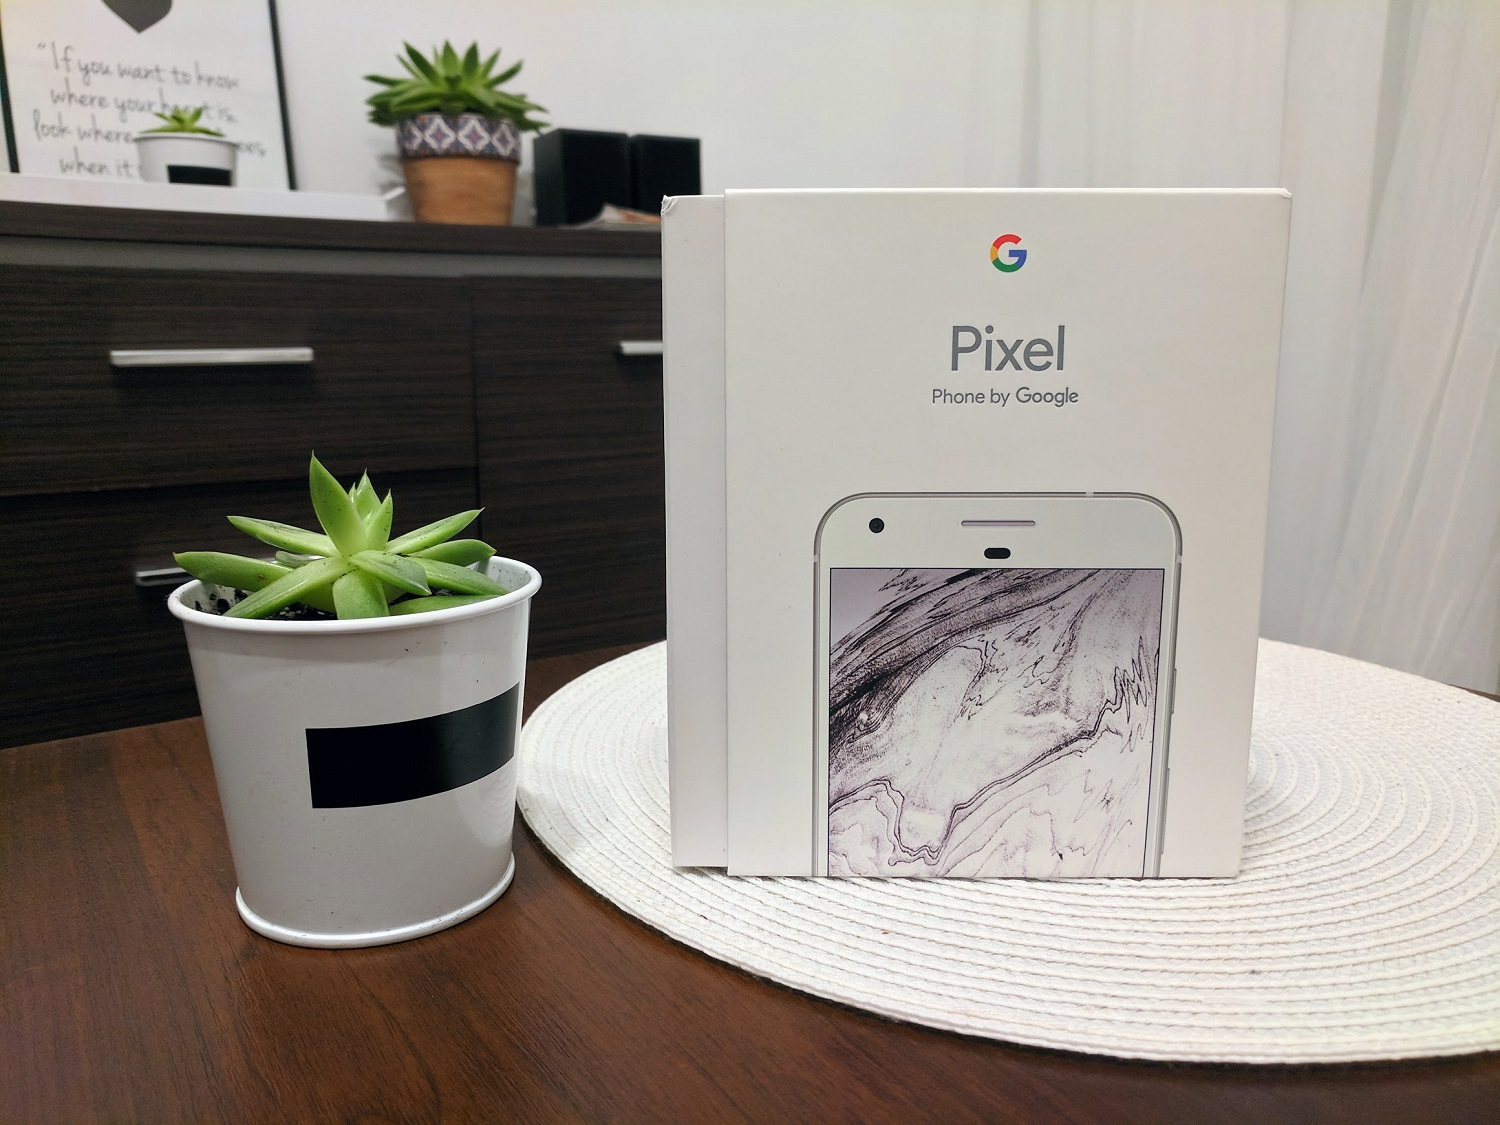 Geek Cat - Google Pixel recenzja - unboxing